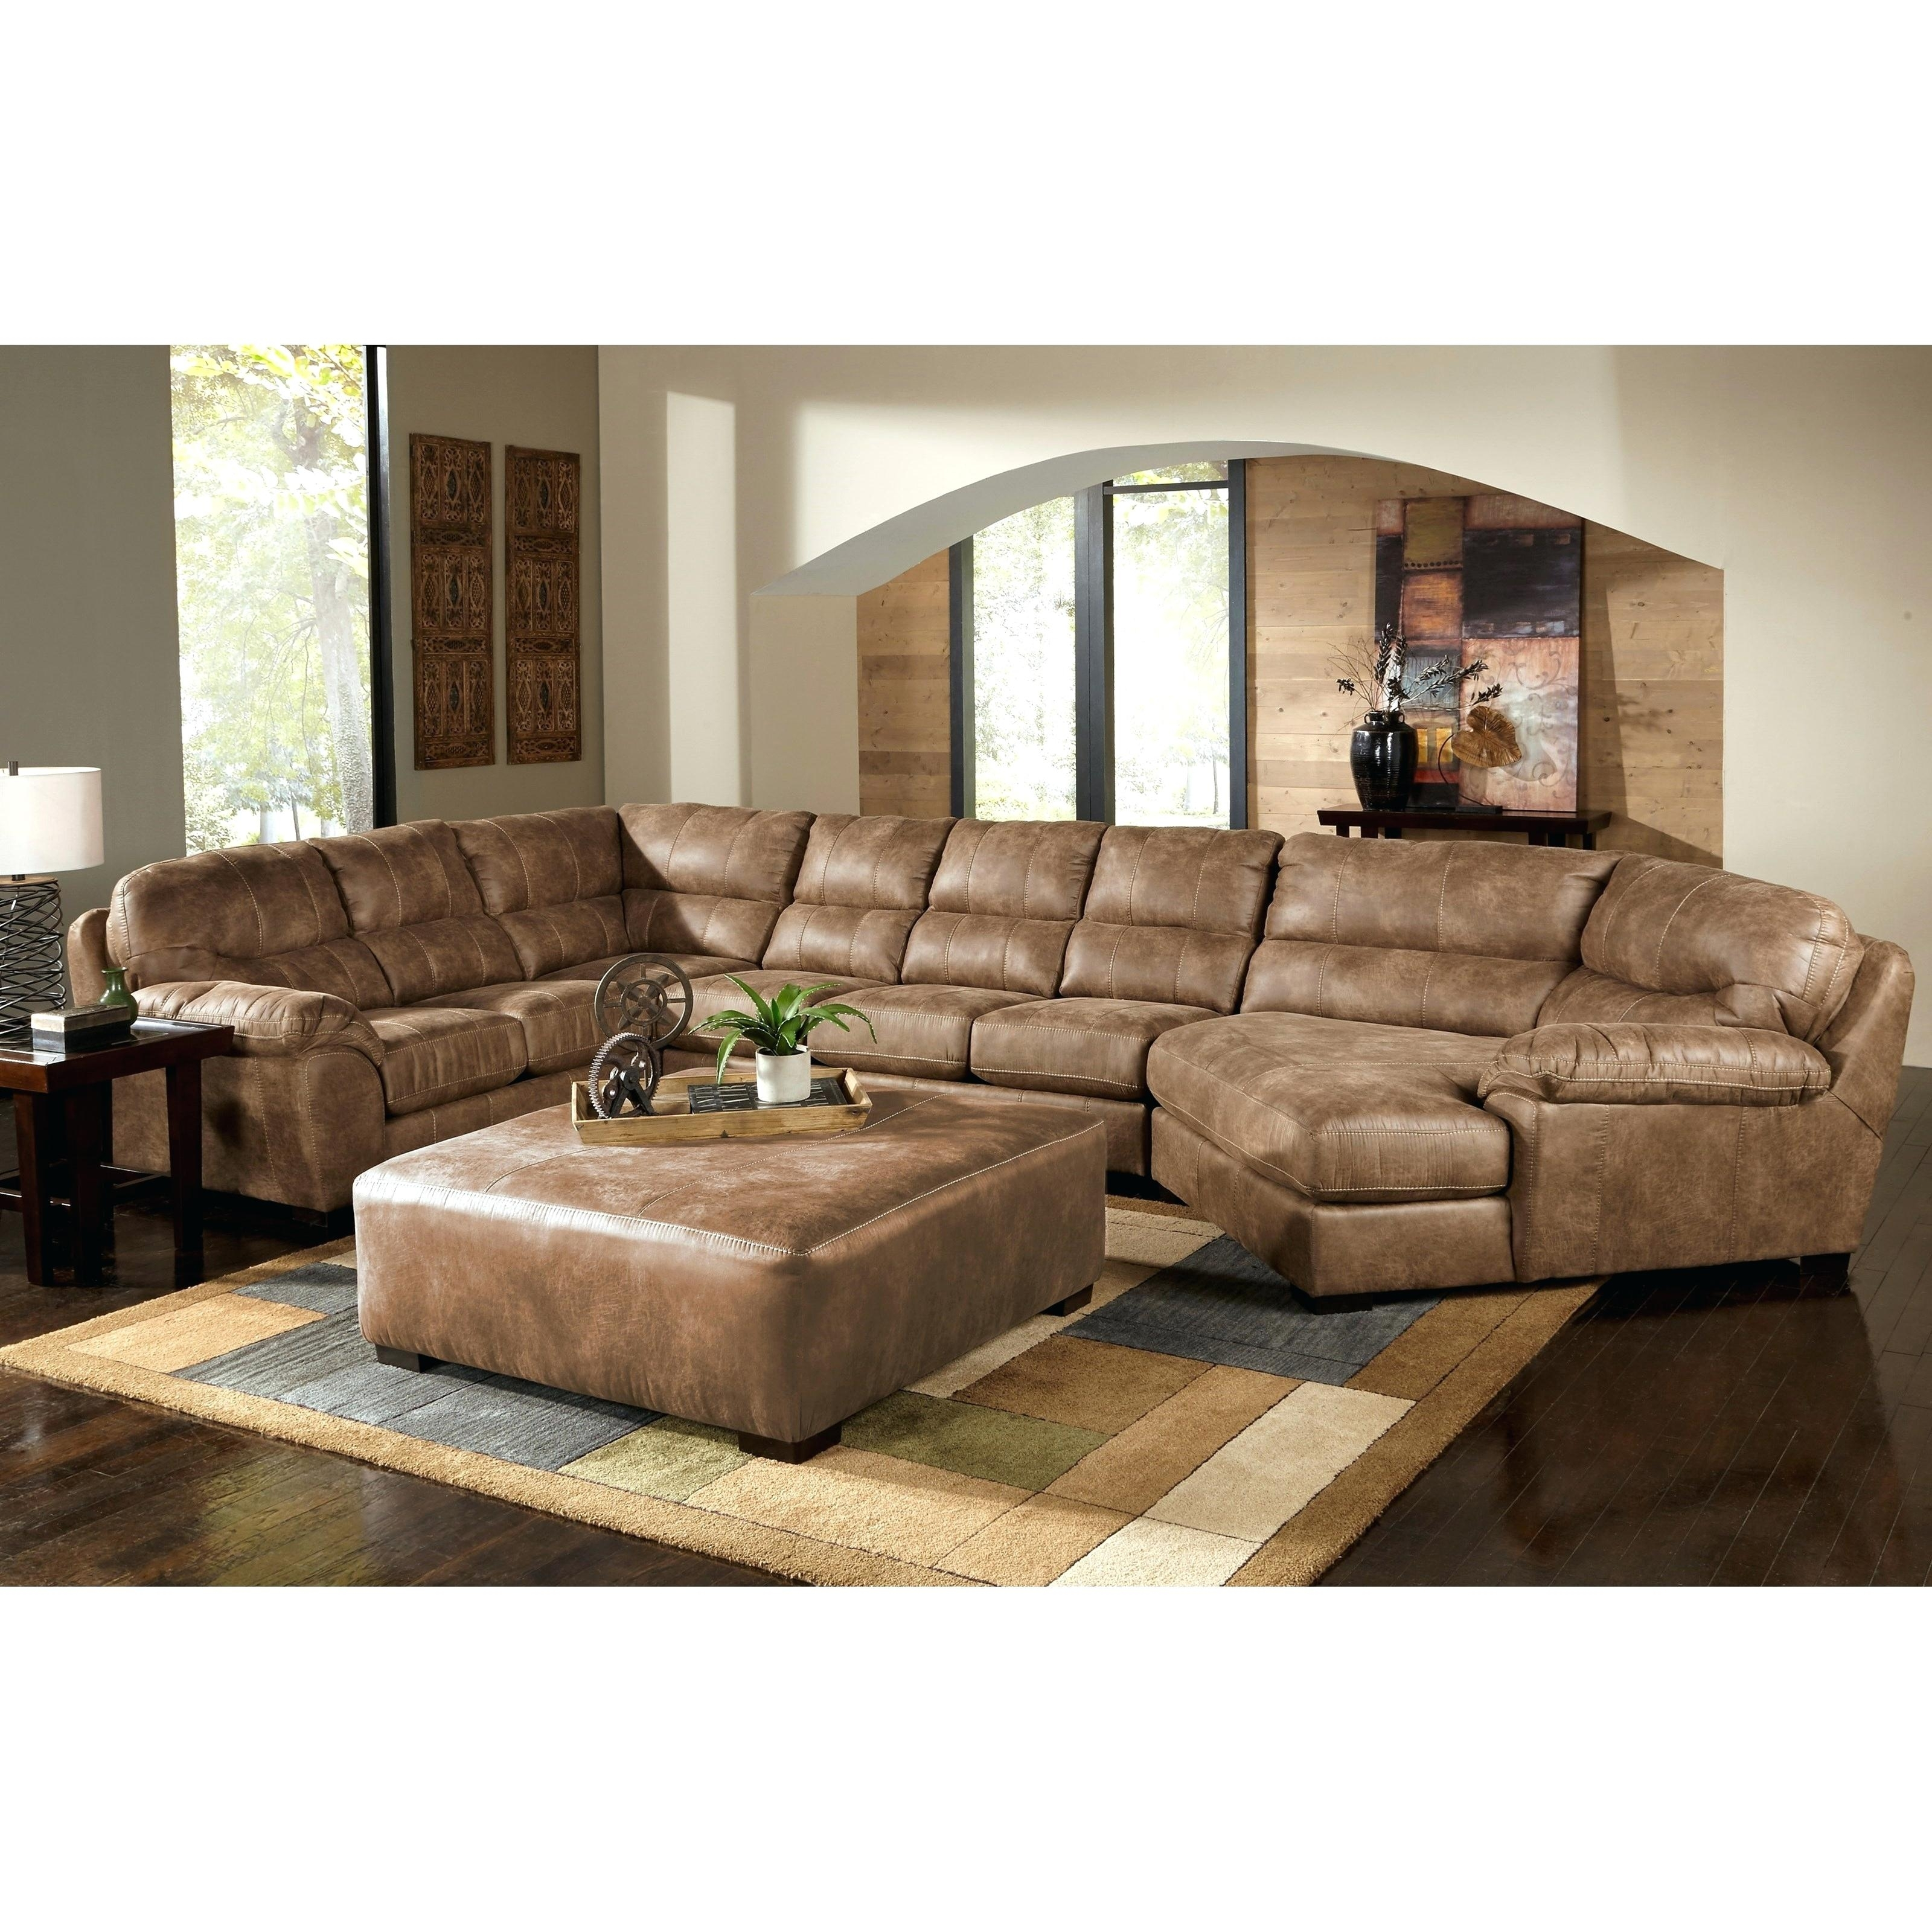 Jordans Furniture Couches Sectional Sofawolf And – 4Parkar throughout Jordans Sectional Sofas (Image 5 of 10)